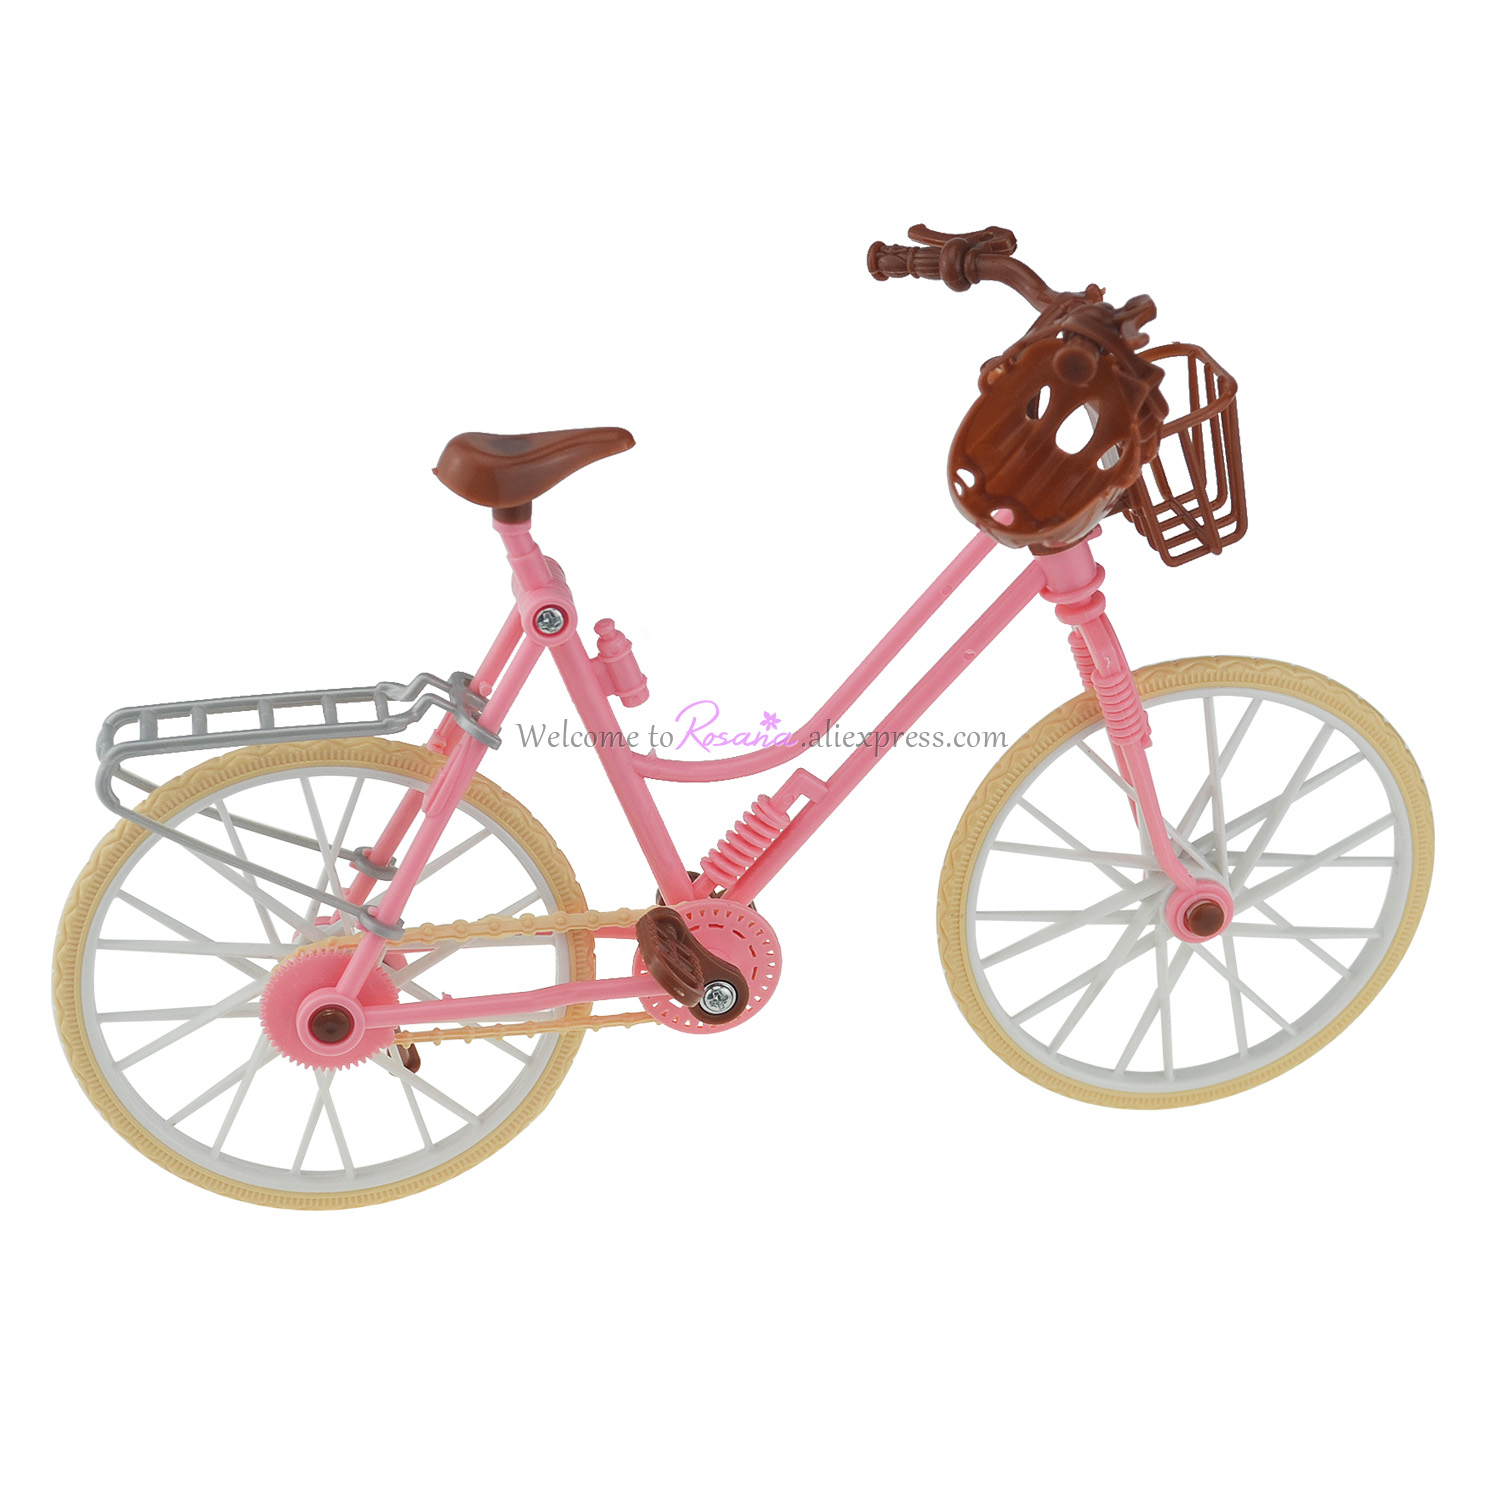 Fashion Beautiful Pink Bicycle Detachable Bike & Basket With Brown plastic helmet Toy Accessories for Barbie Dolls Accessories universal bike bicycle motorcycle helmet mount accessories